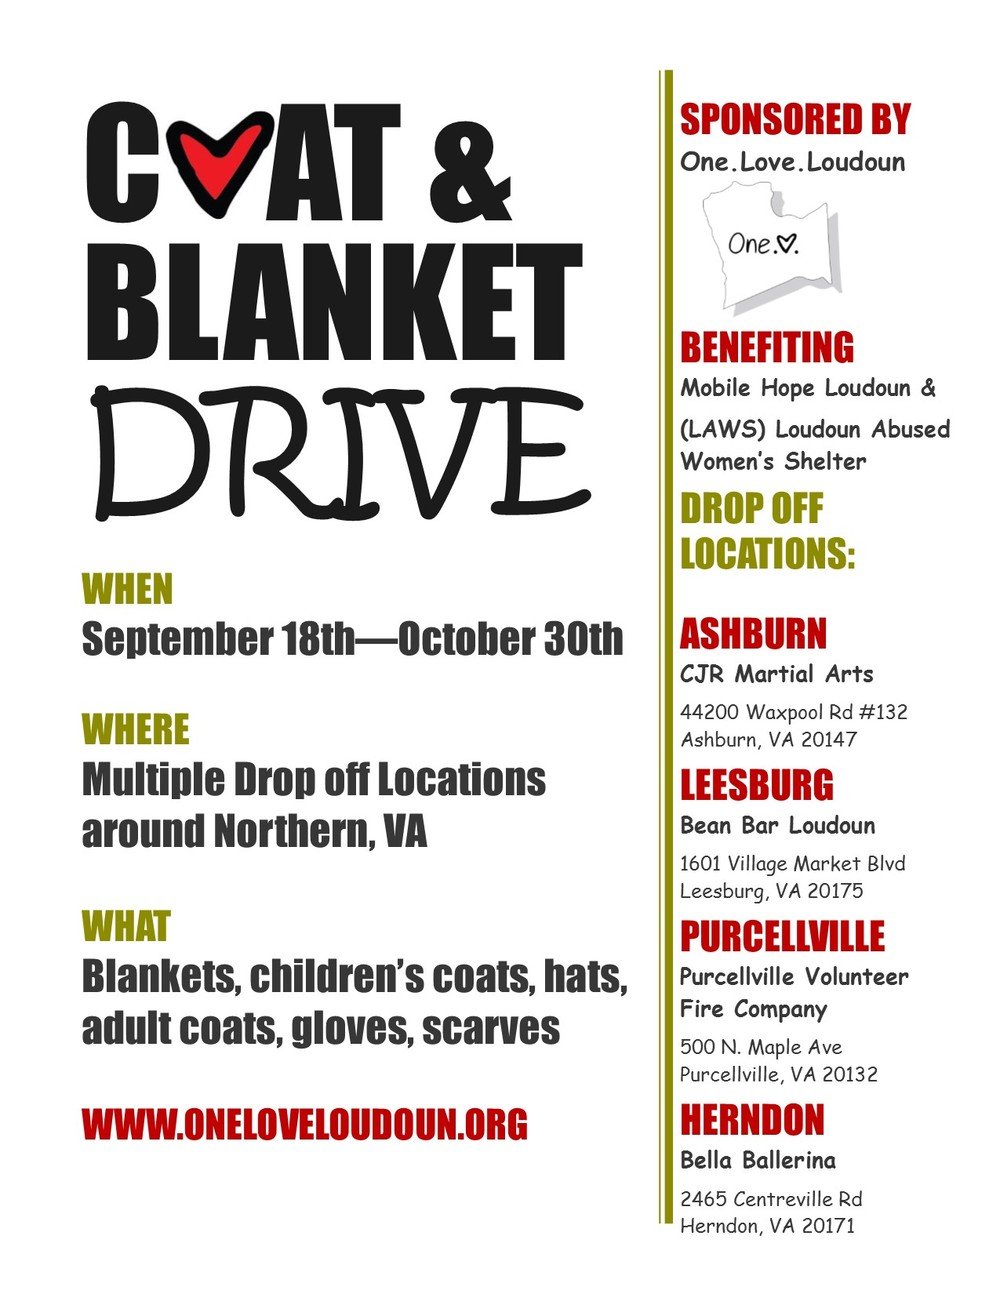 coat and blanket drive flyer 10_5.jpg